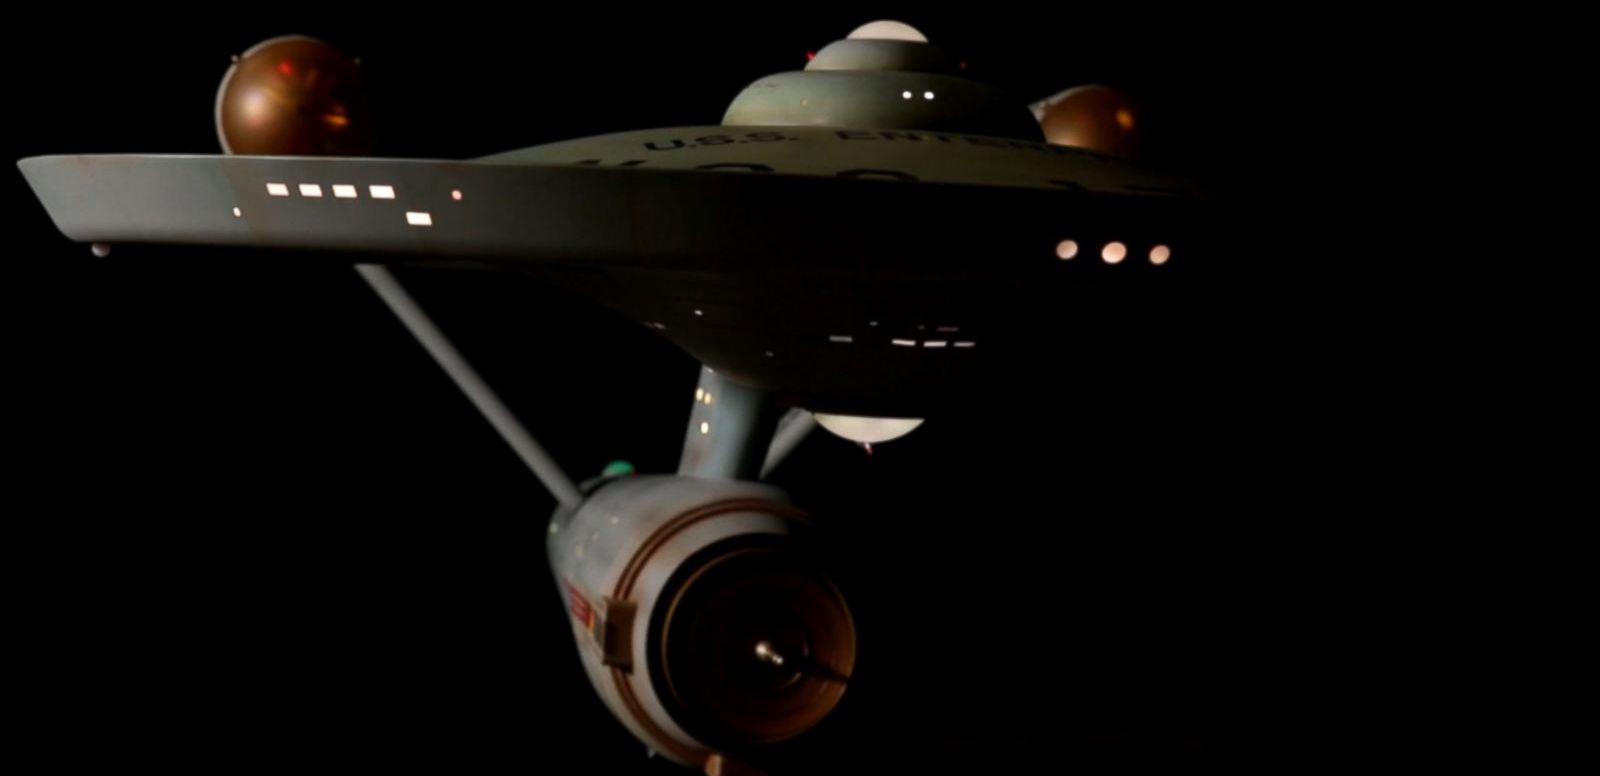 VIDEO: Restored 'Star Trek' Enterprise Model Lands in Its New Home